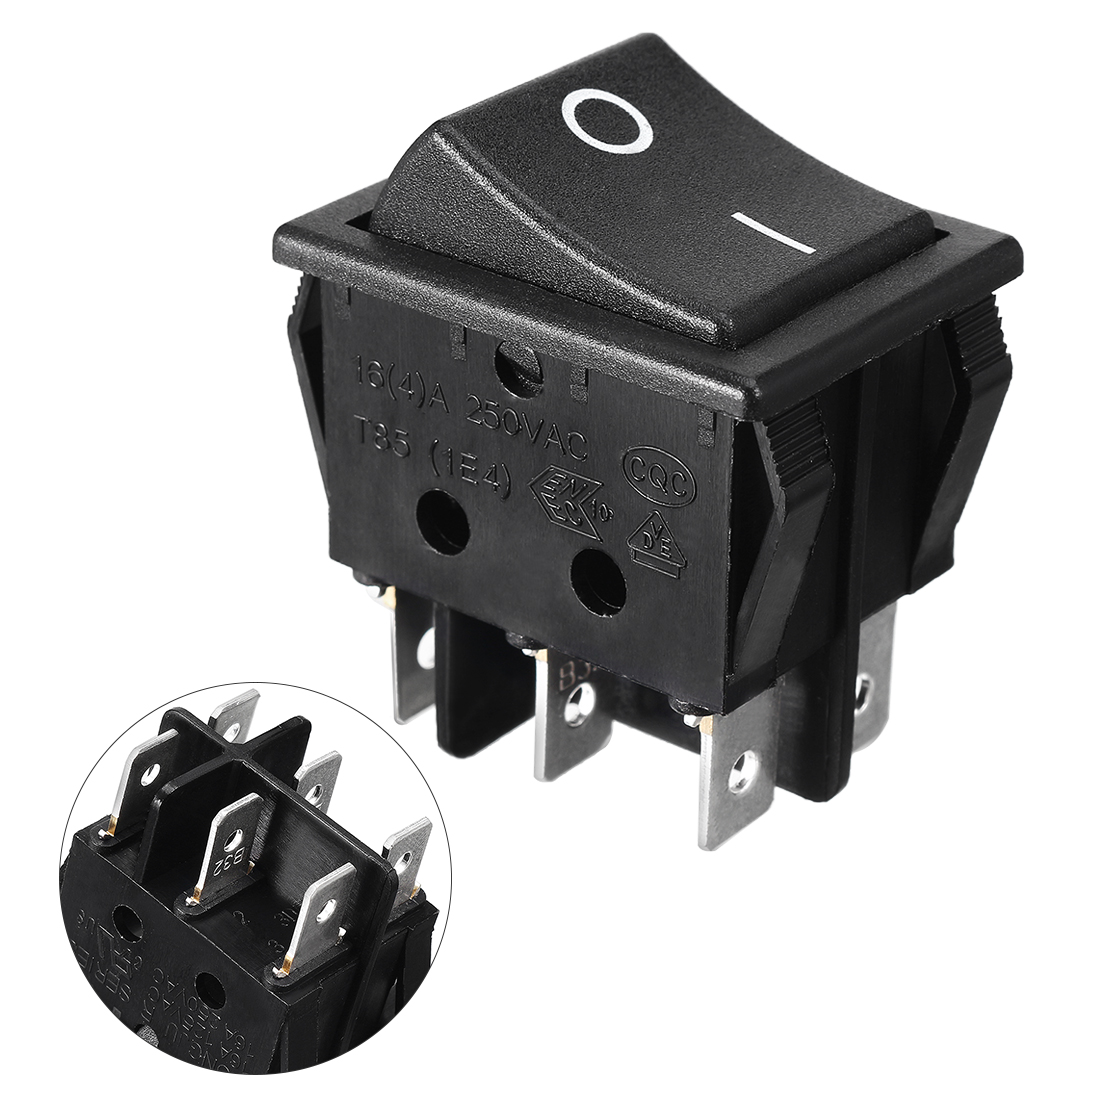 AC 250V 16A DPDT ON/ON I/O 2 Position Snap in Boat Rocker Switch